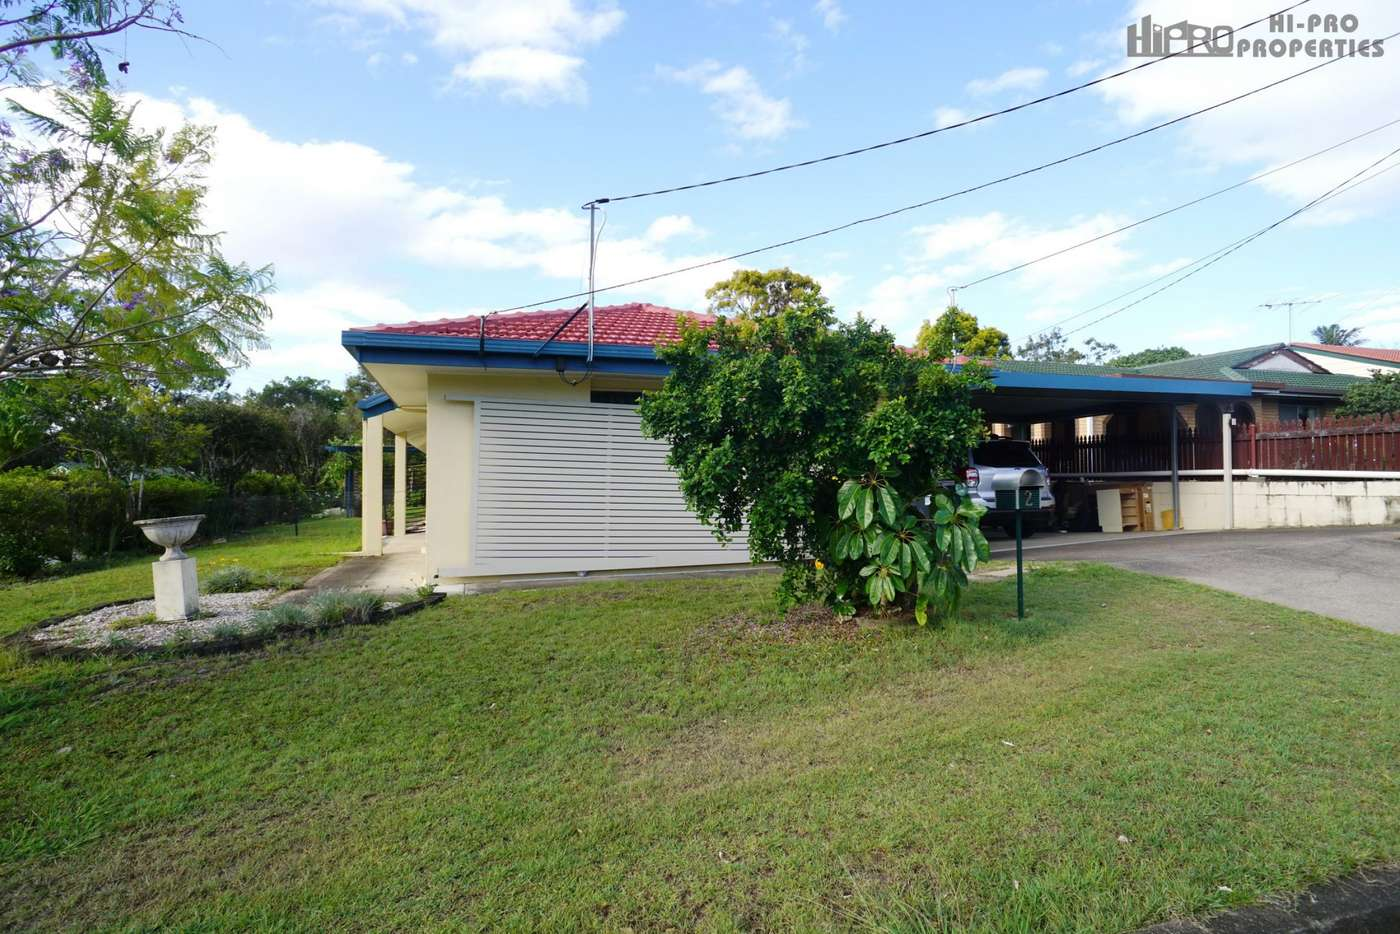 Main view of Homely house listing, 2 Bertie street, Sunnybank Hills QLD 4109